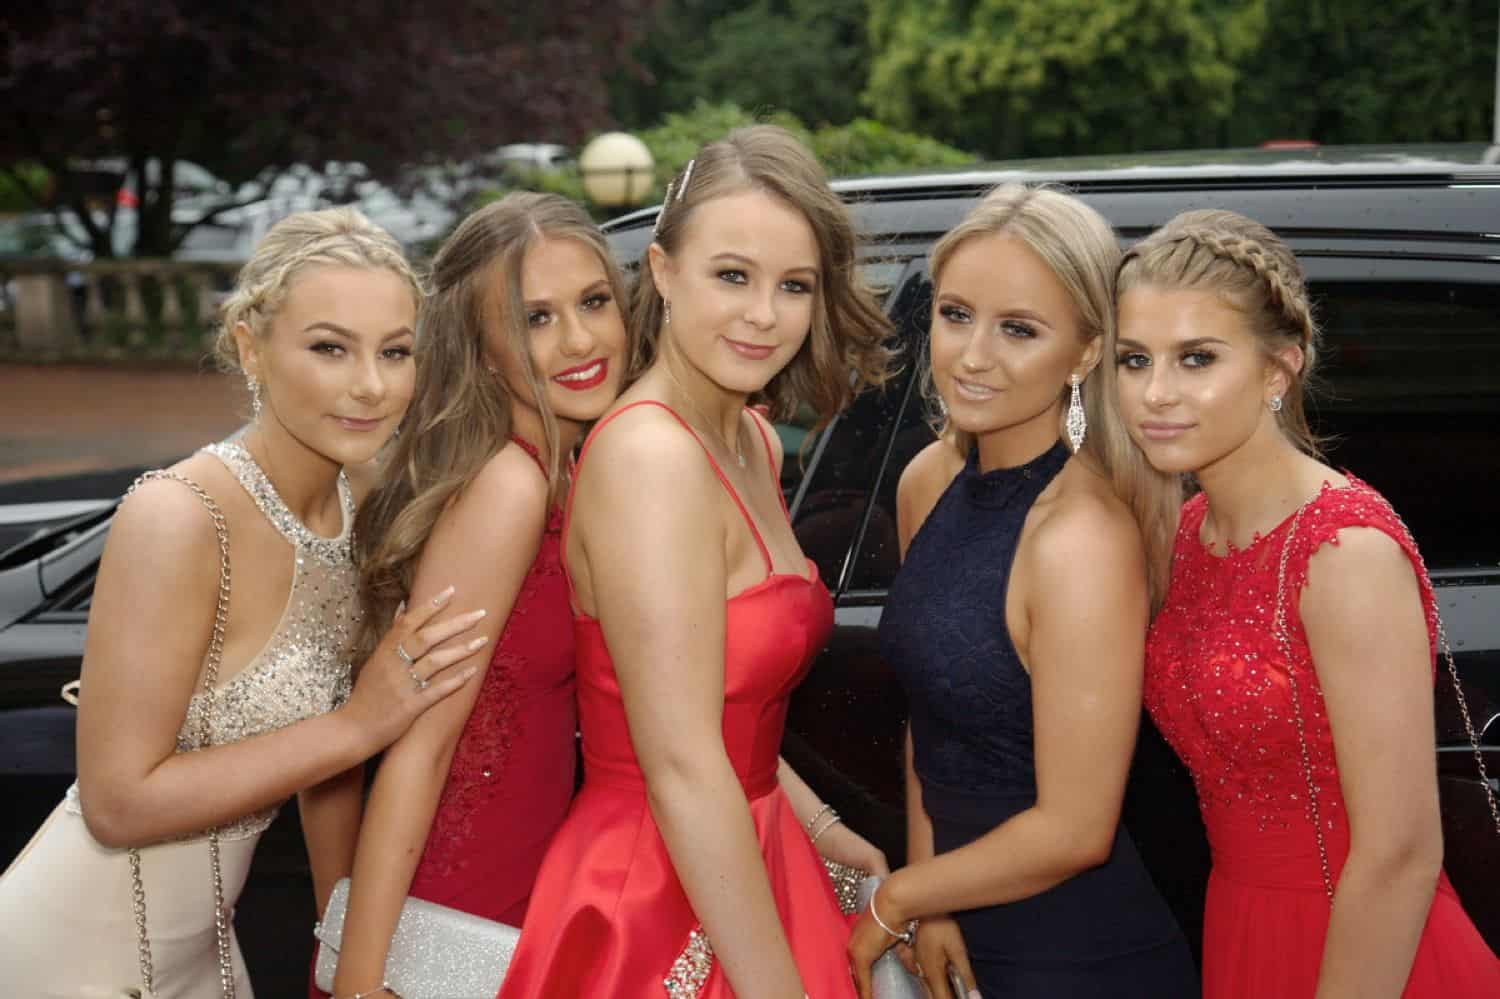 Five high school senior girls pose for their prom photography